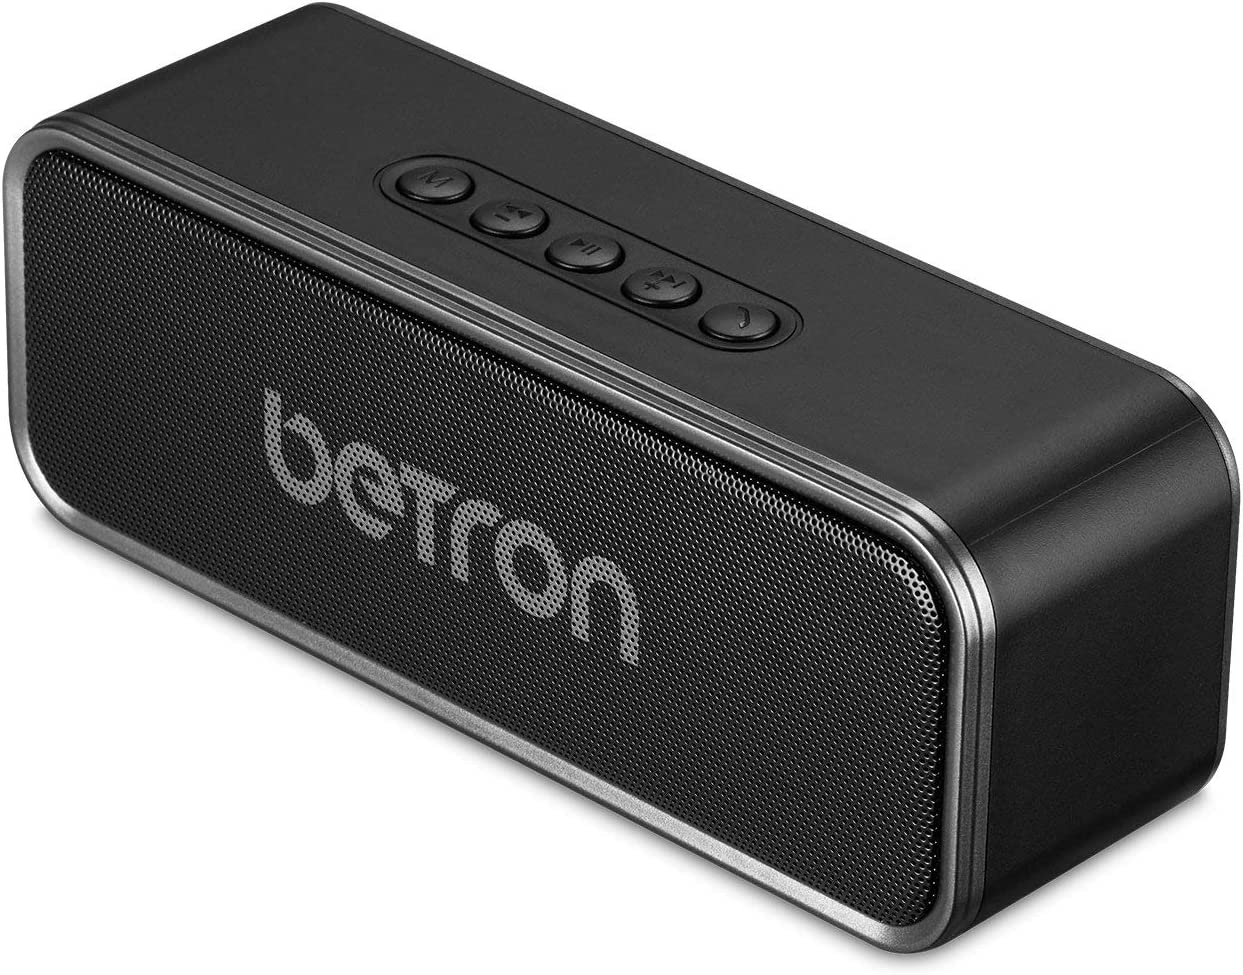 Betron D51 Bluetooth Wireless Speaker, Stereo Sound, Enhanced Bass, 5W Dual High Performance Drivers, Compatible with iPhone, Samsung, Tablets, Laptops and More, Black